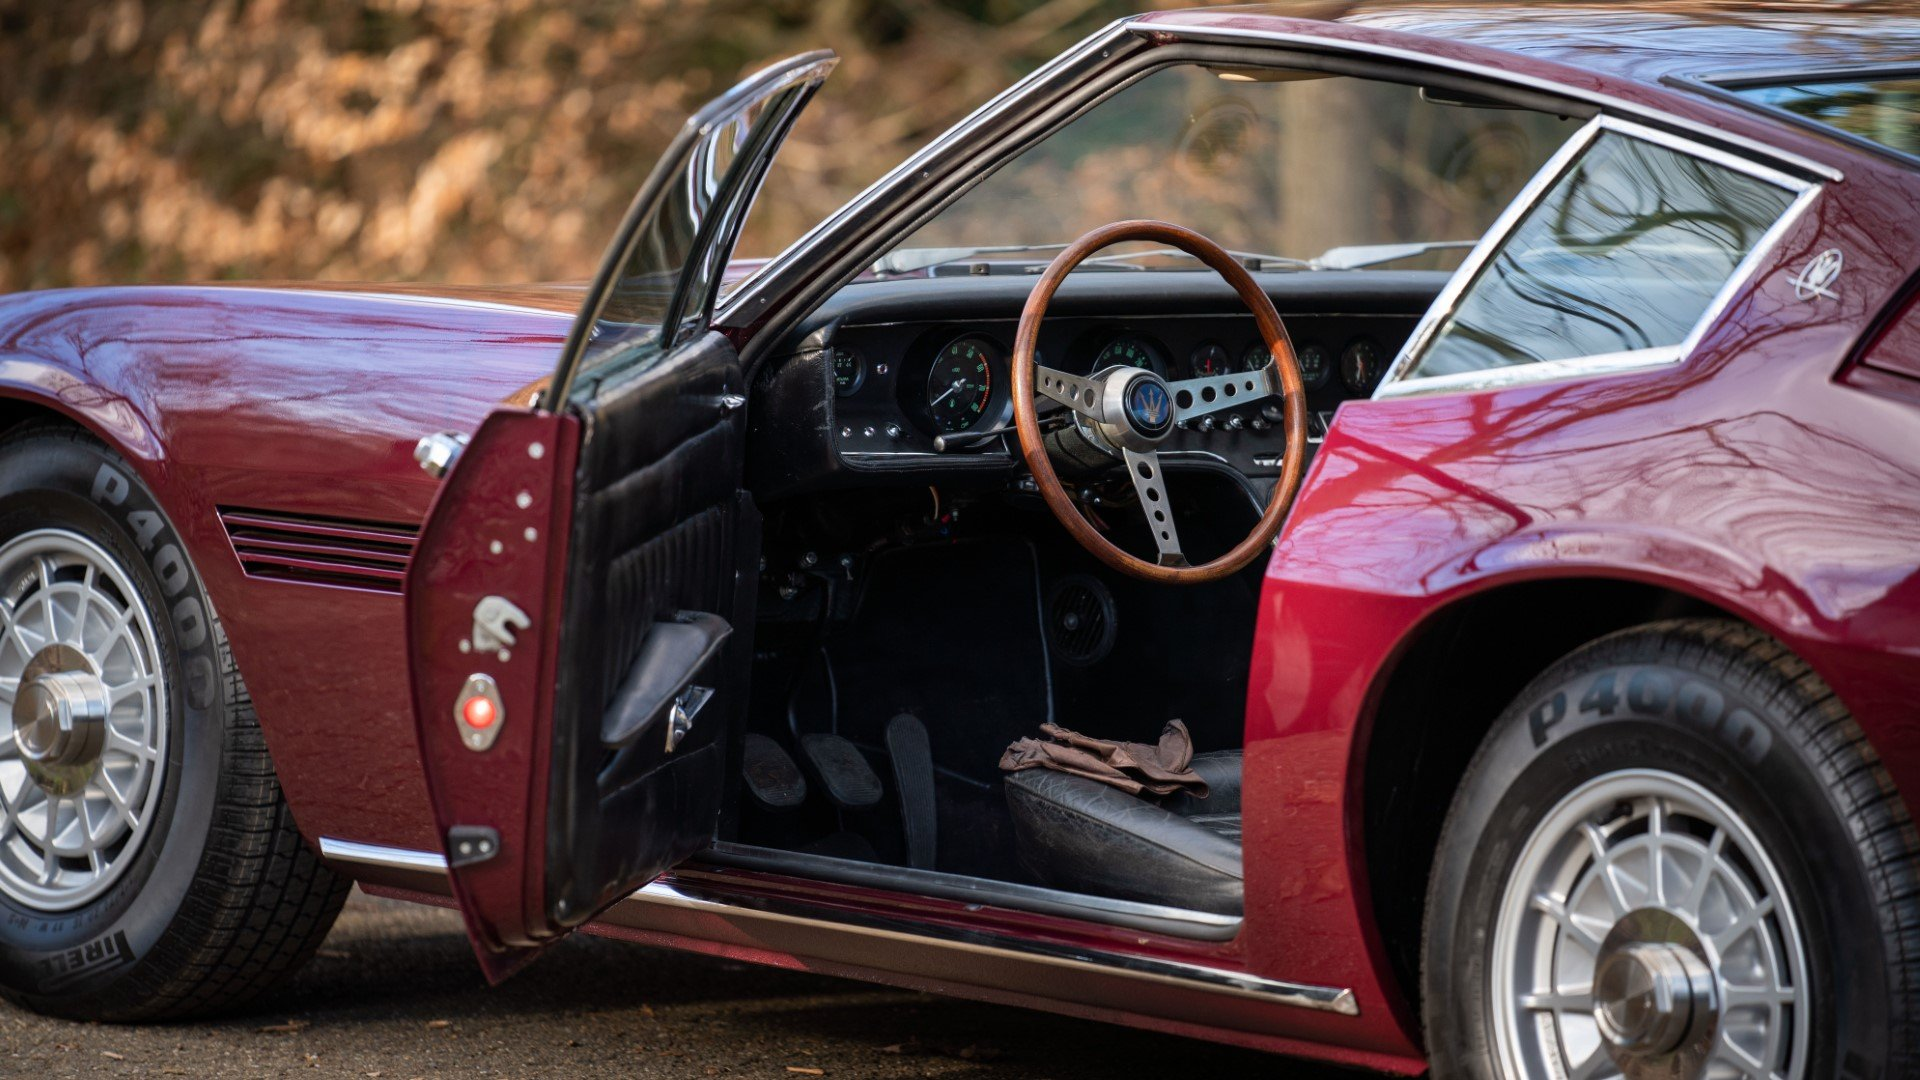 MASERATI GHIBLI Coupe superb restoration (1968) For Sale (picture 3 of 6)